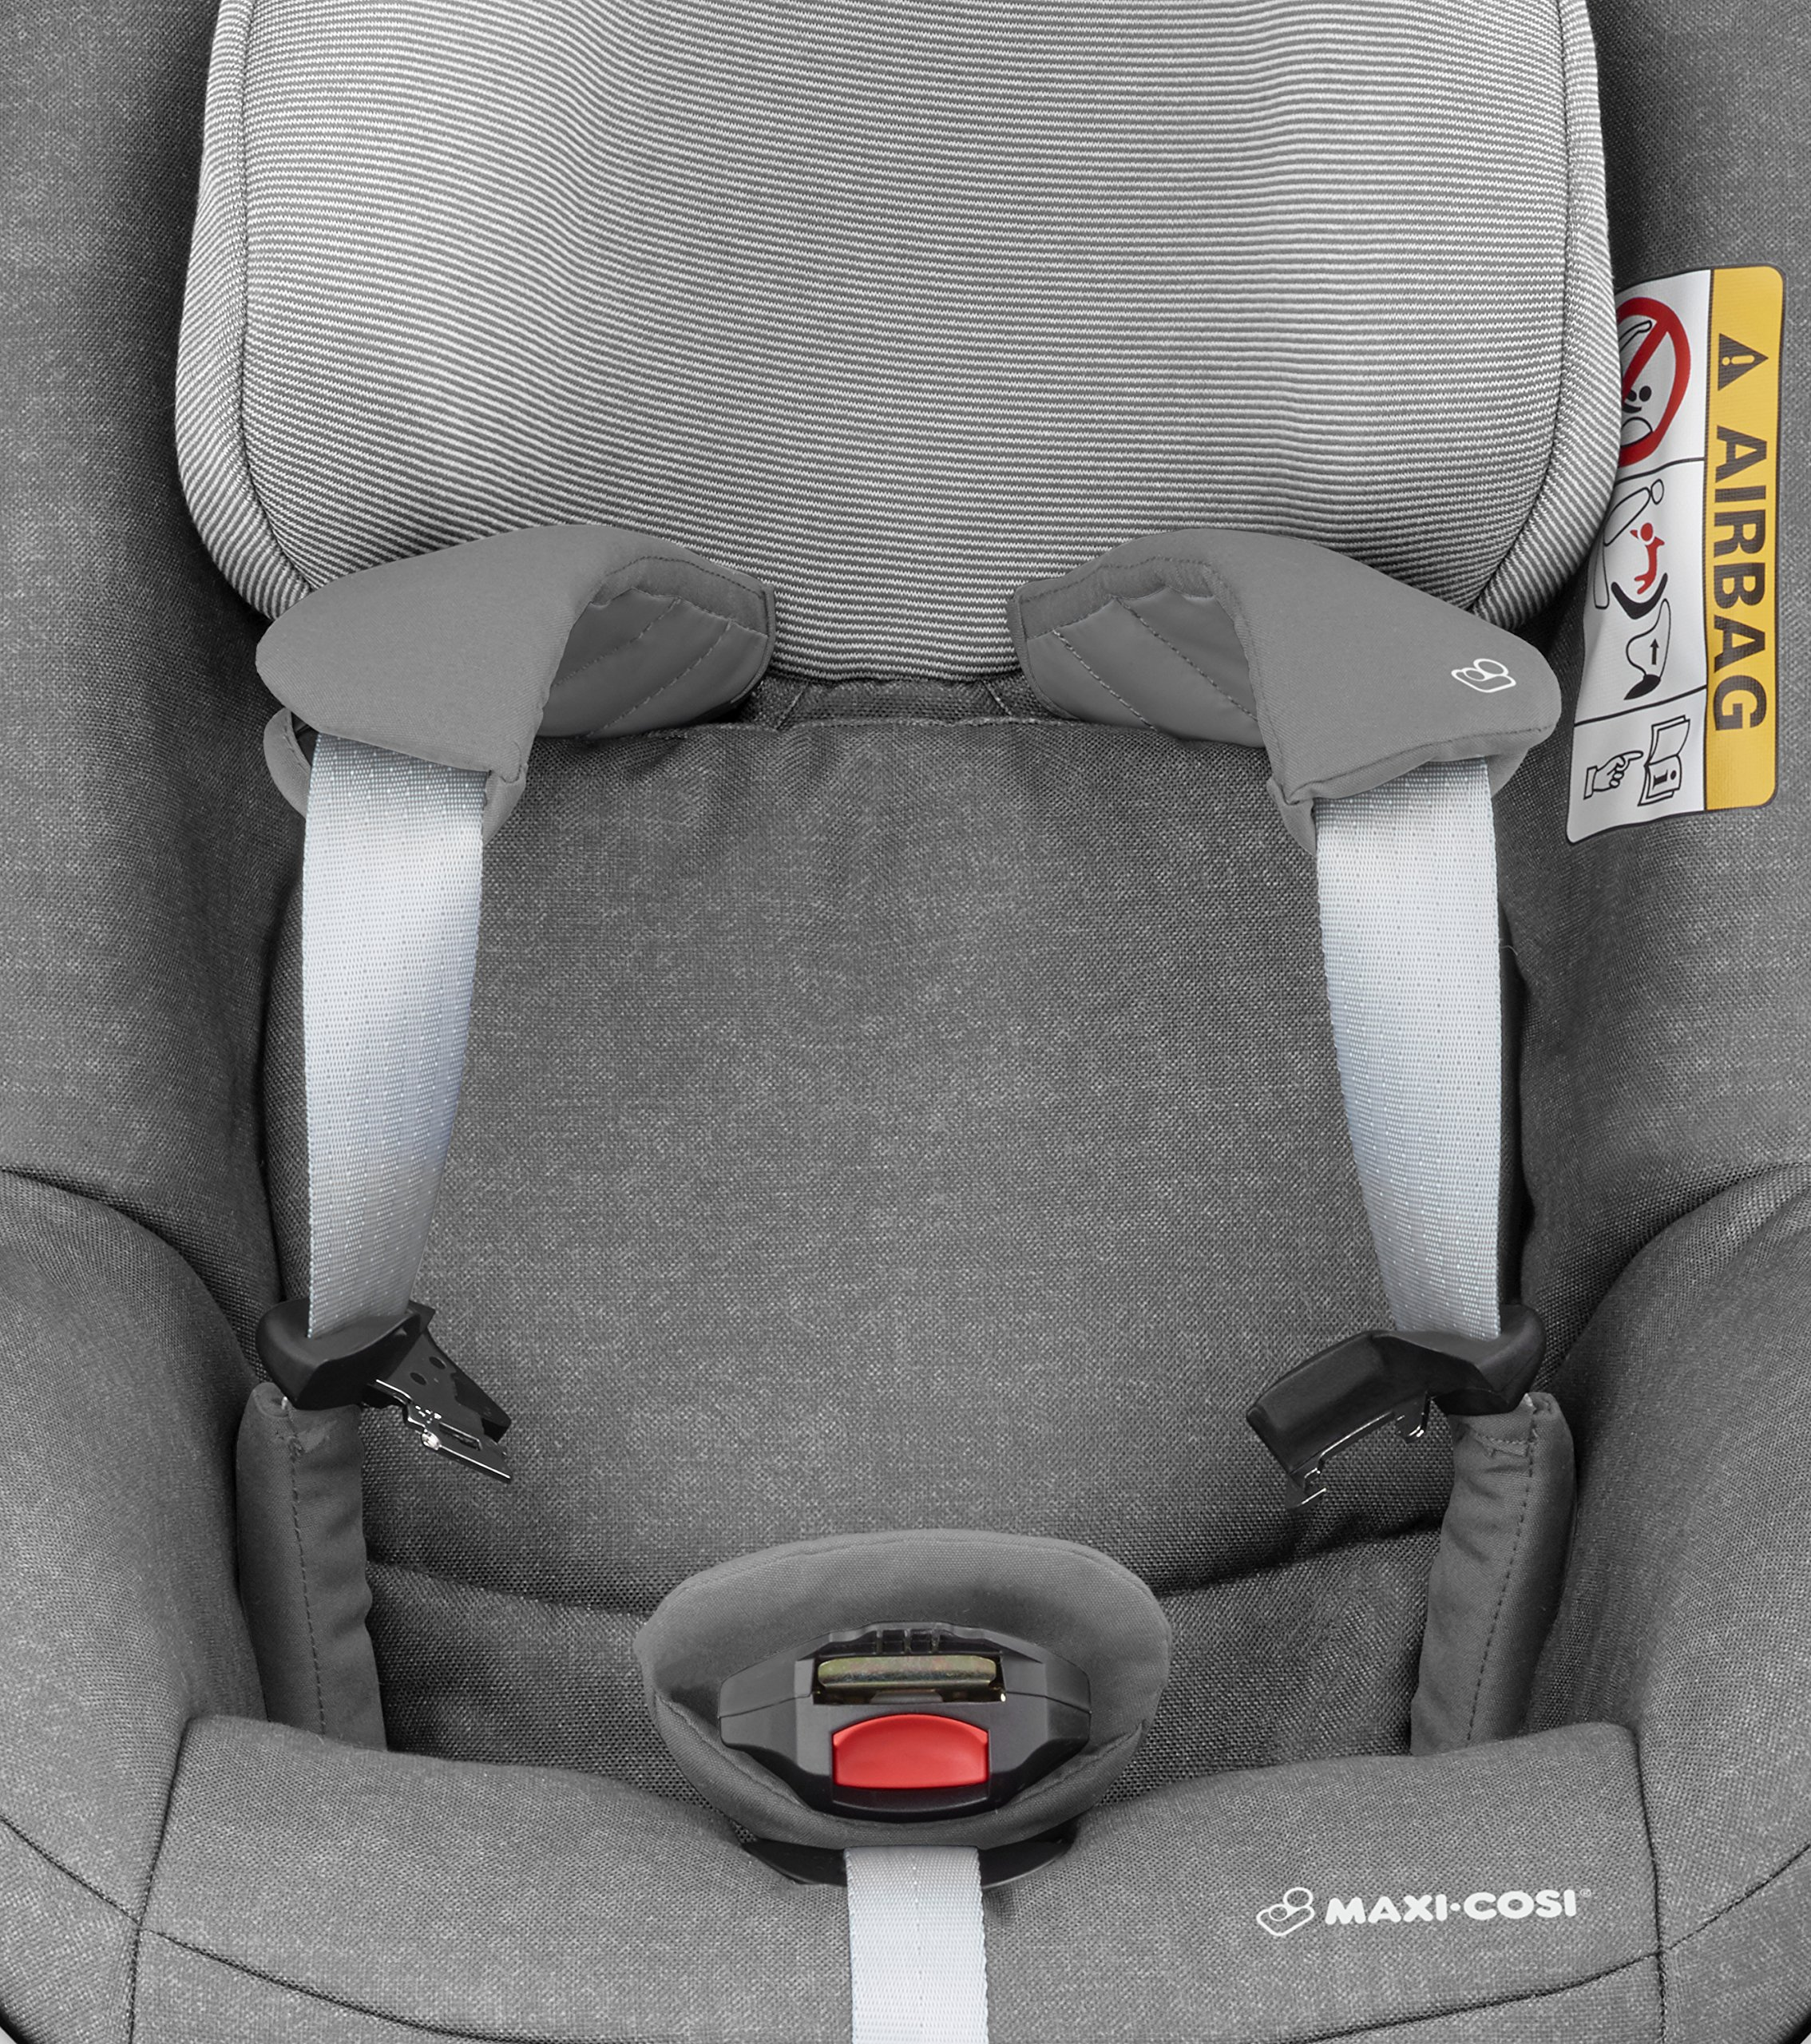 Maxi-Cosi Pearl One i-Size Toddler Car Seat Group 1, Rear-Facing Car Seat, ISOFIX, 67-105 cm, 6 Months-4 Years, Nomad Grey Maxi-Cosi Must be used with the maxi-cosi family fix one i-size base Approved according to the latest european safety standard i-size (r129) Innovative stay open harness to easily get the child in and out in seconds 7